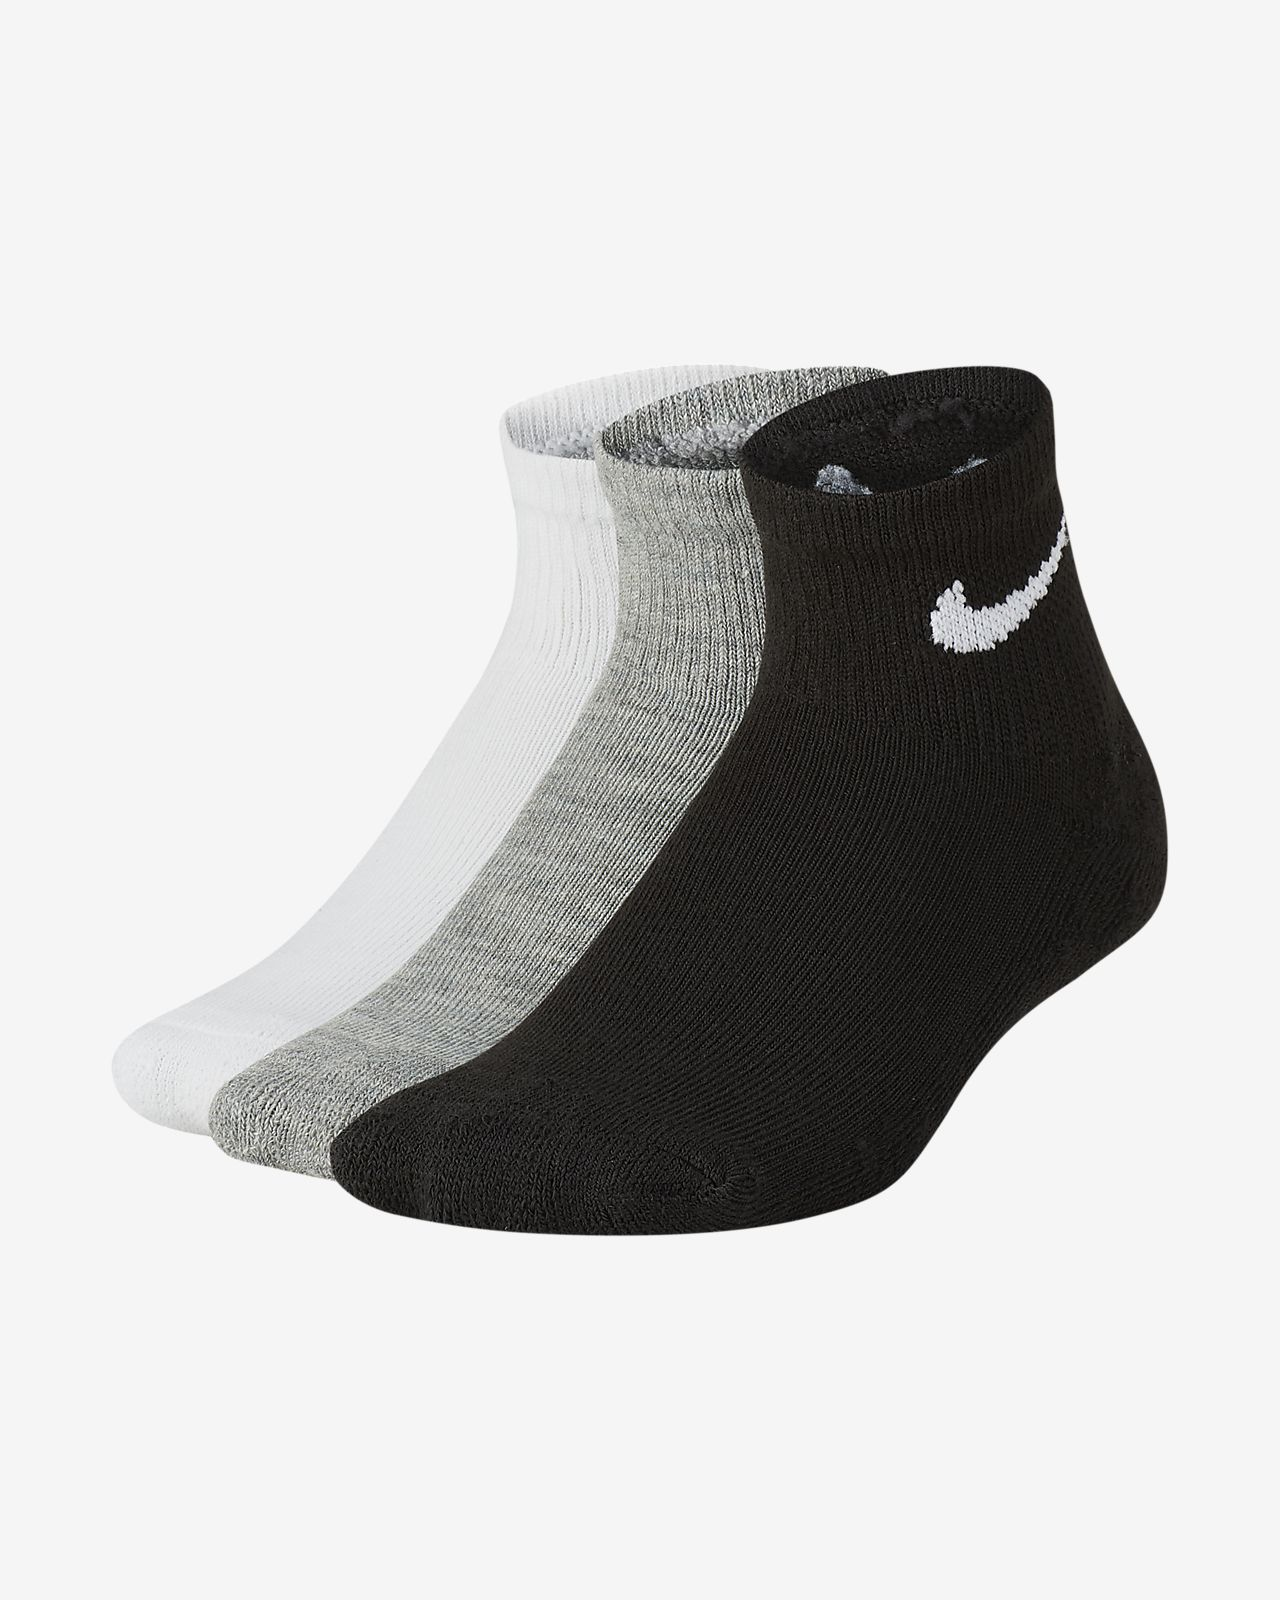 Nike Younger Kids' Cushioned Ankle Socks (3 Pairs)